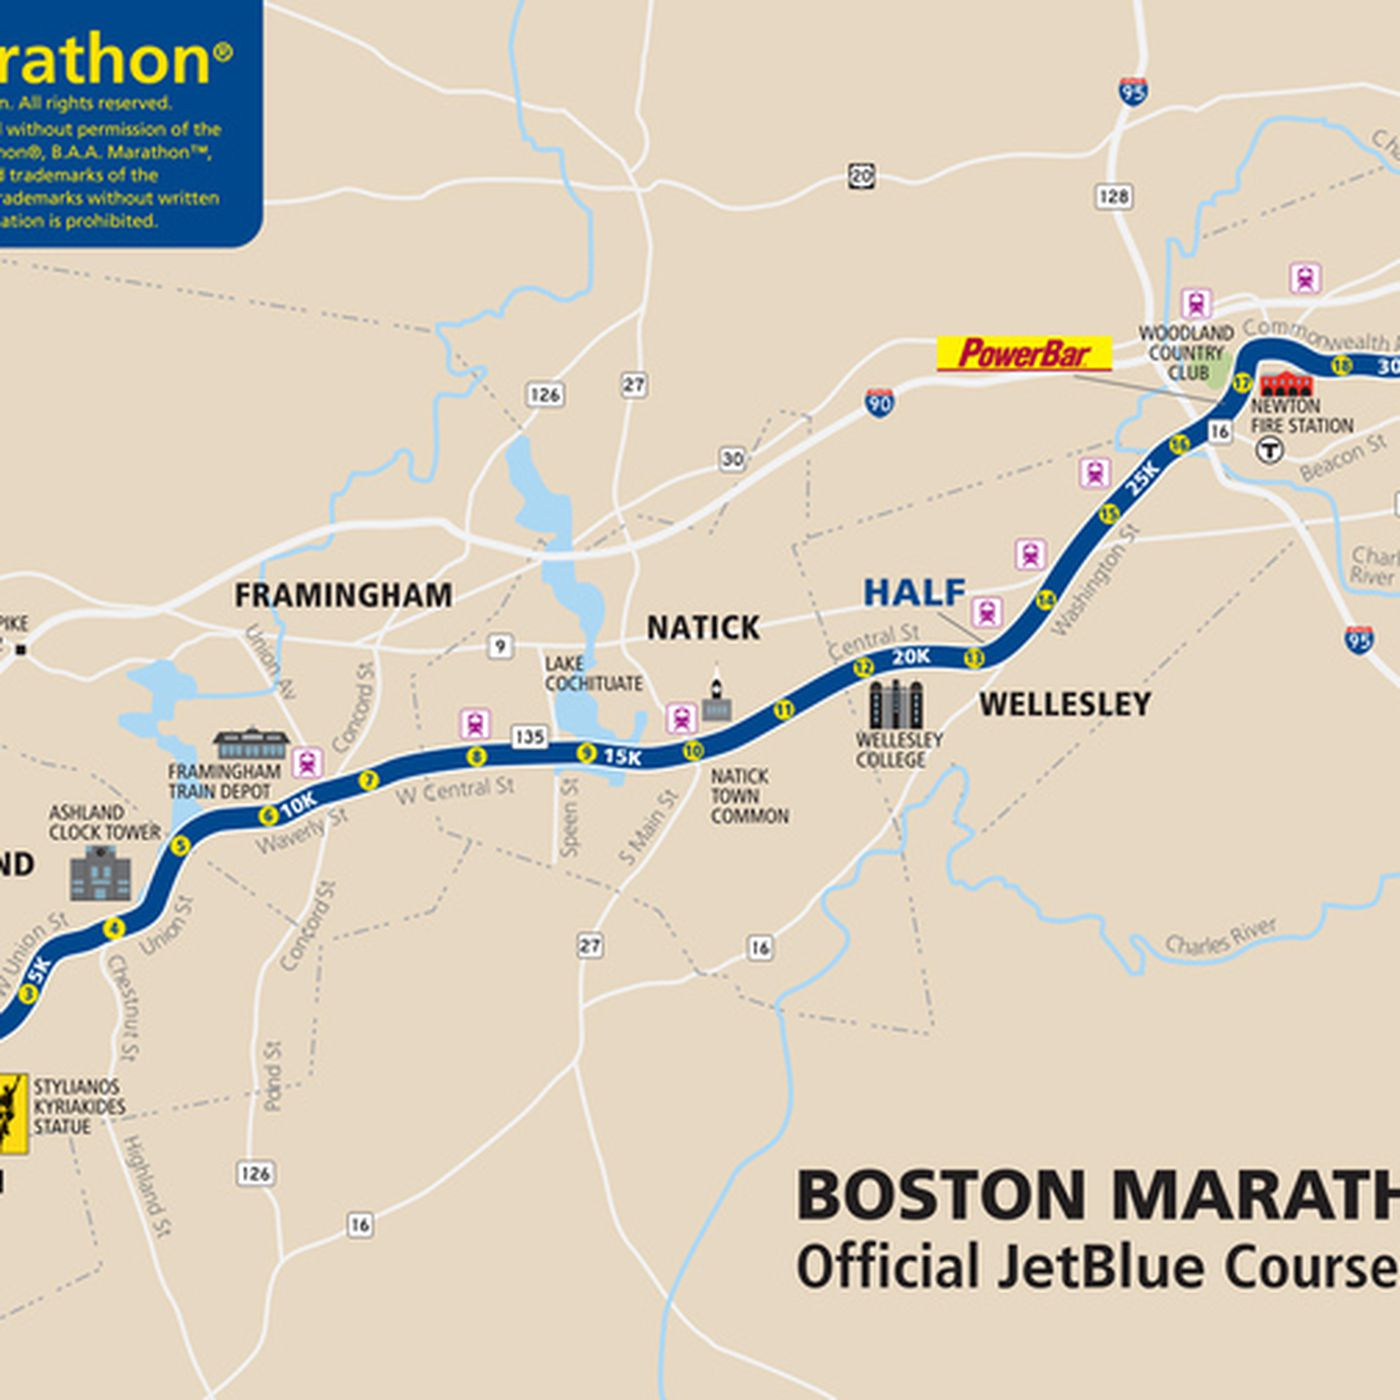 heartbreak hill boston marathon map Boston Marathon 2013 Route Information Course Map And More heartbreak hill boston marathon map